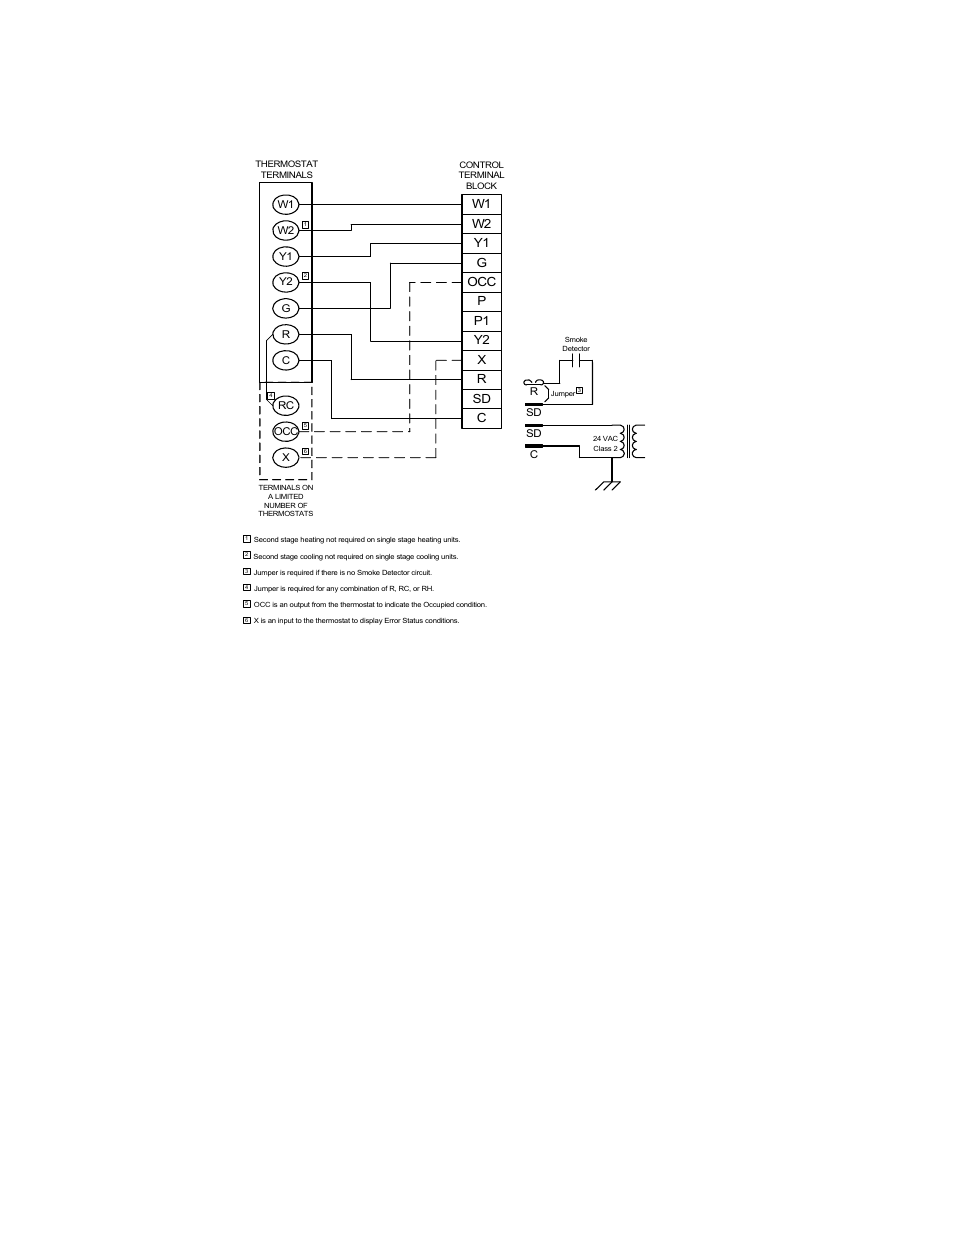 13 typical simplicity® control wiring, Diagram, Figure 13